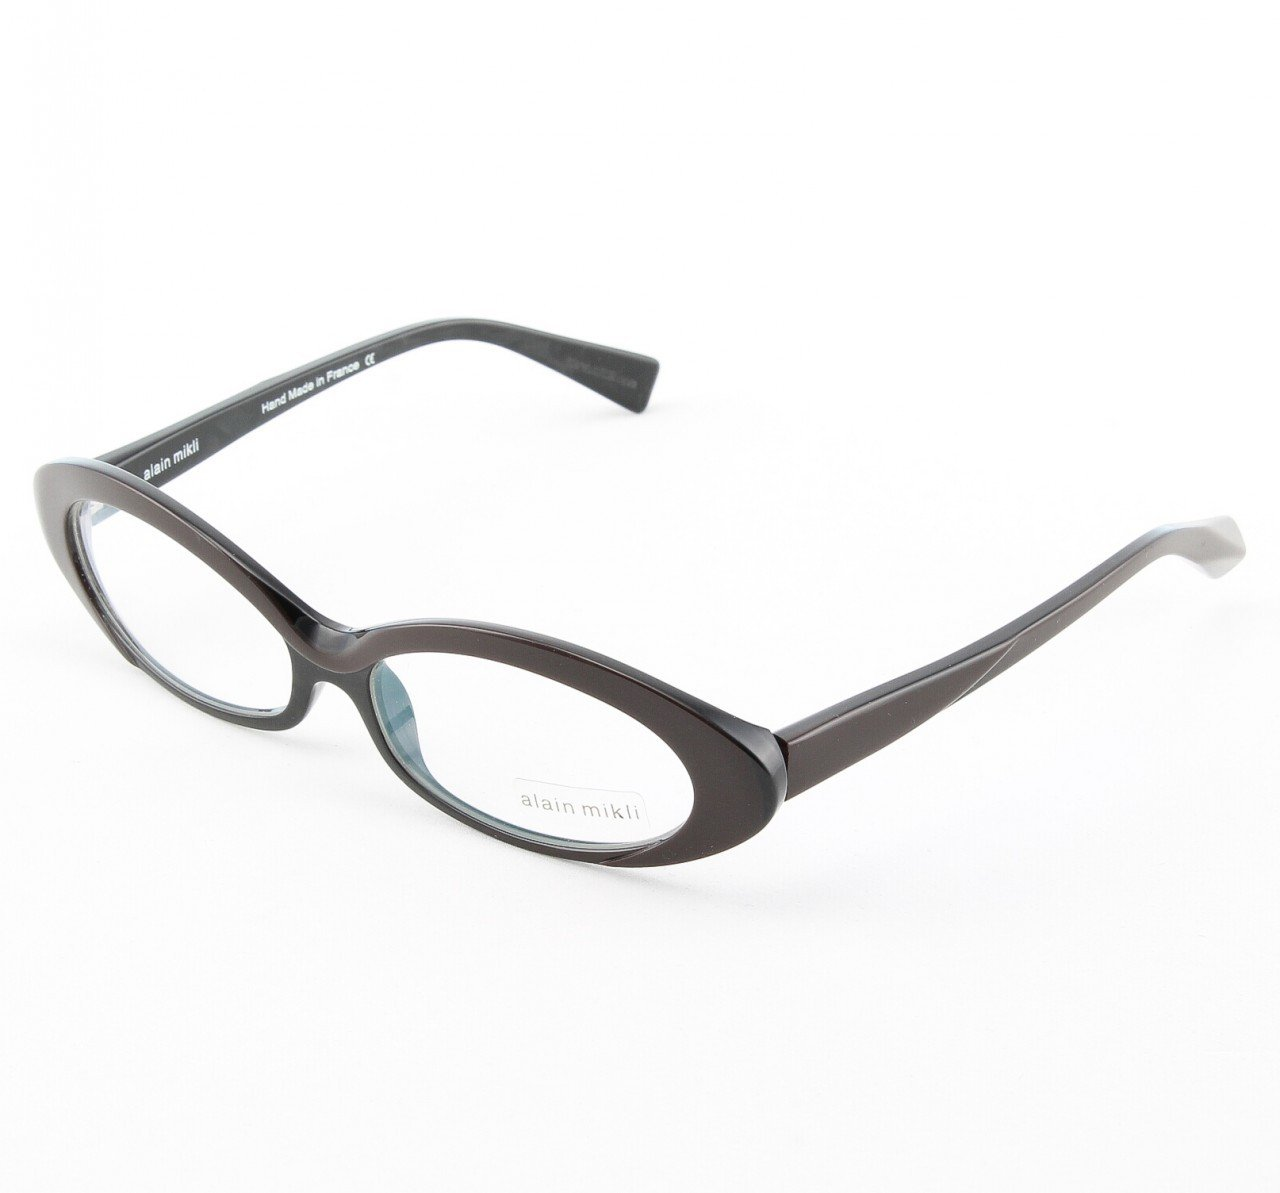 Alain Mikli Eyeglasses AL1037 Col. 2 Chocolate Brown with Black Frame Accent